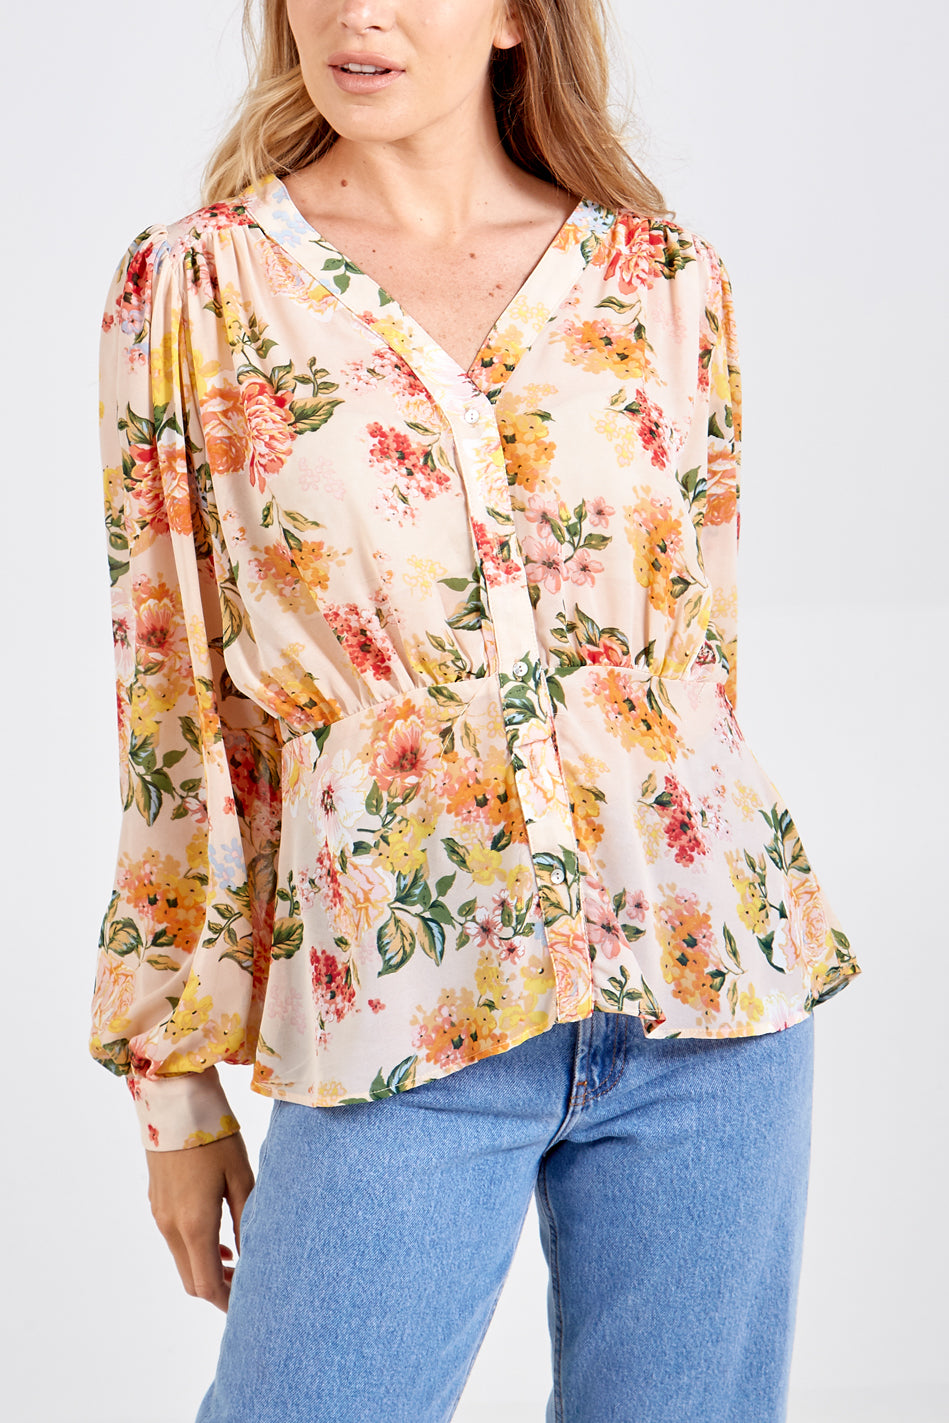 Gathered Details Blouse